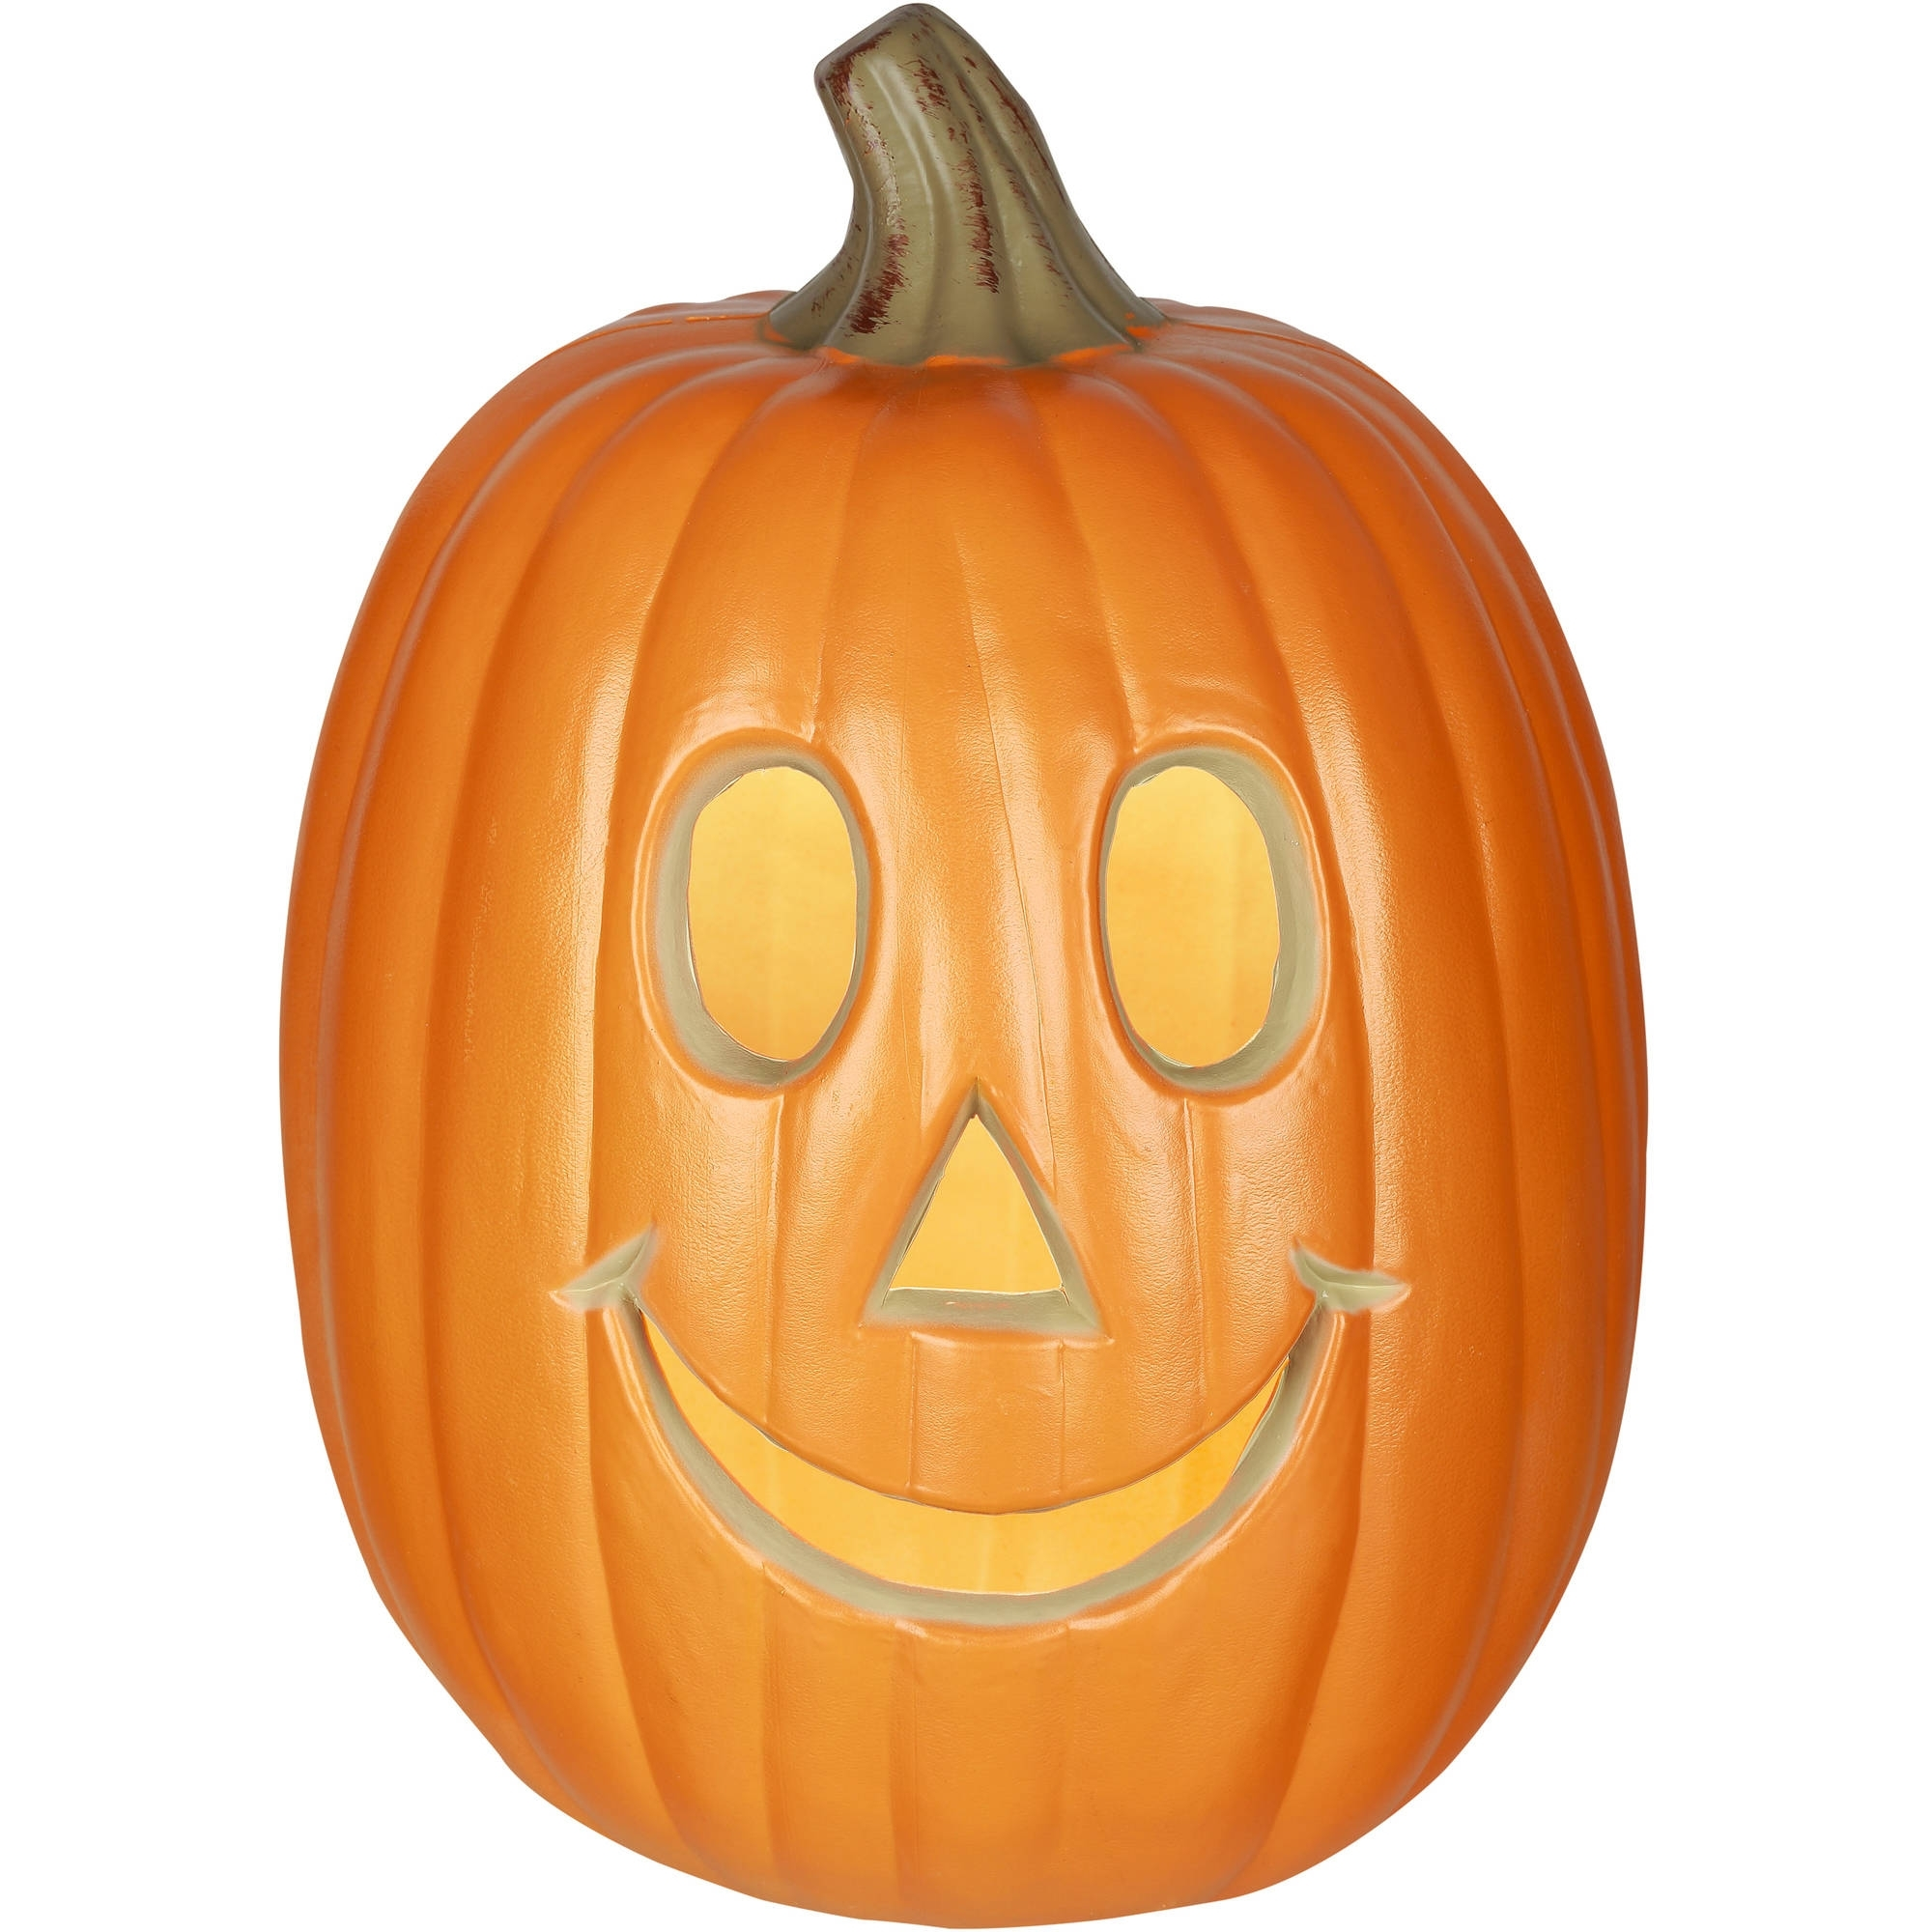 "Gemmy Lighted Jack-O-Lantern 12"" Happy Pumpkin Halloween Decoration intended for Outdoor Pumpkin Lanterns (Image 11 of 20)"